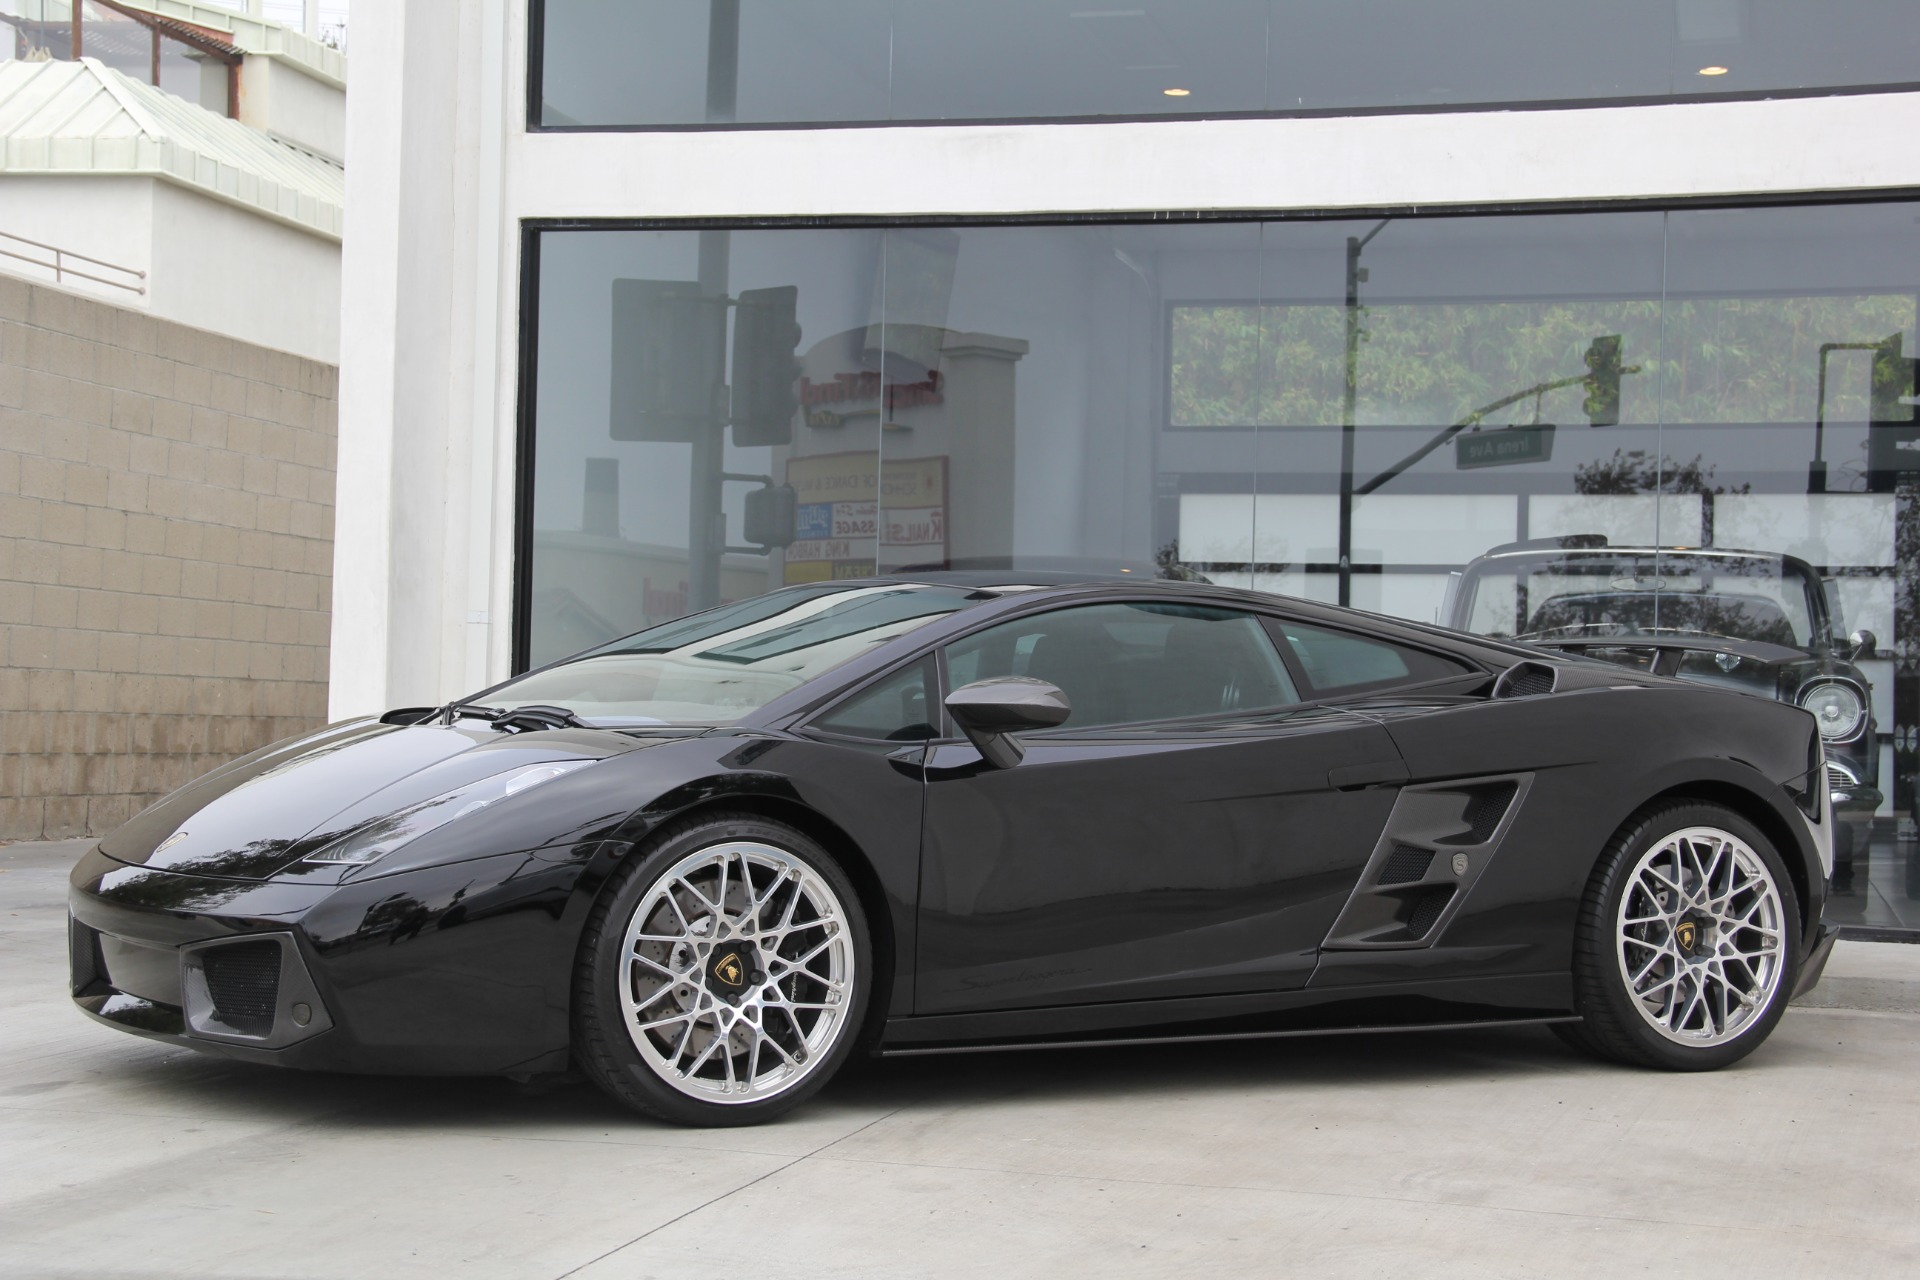 Used-2008-Lamborghini-Gallardo-Superleggera